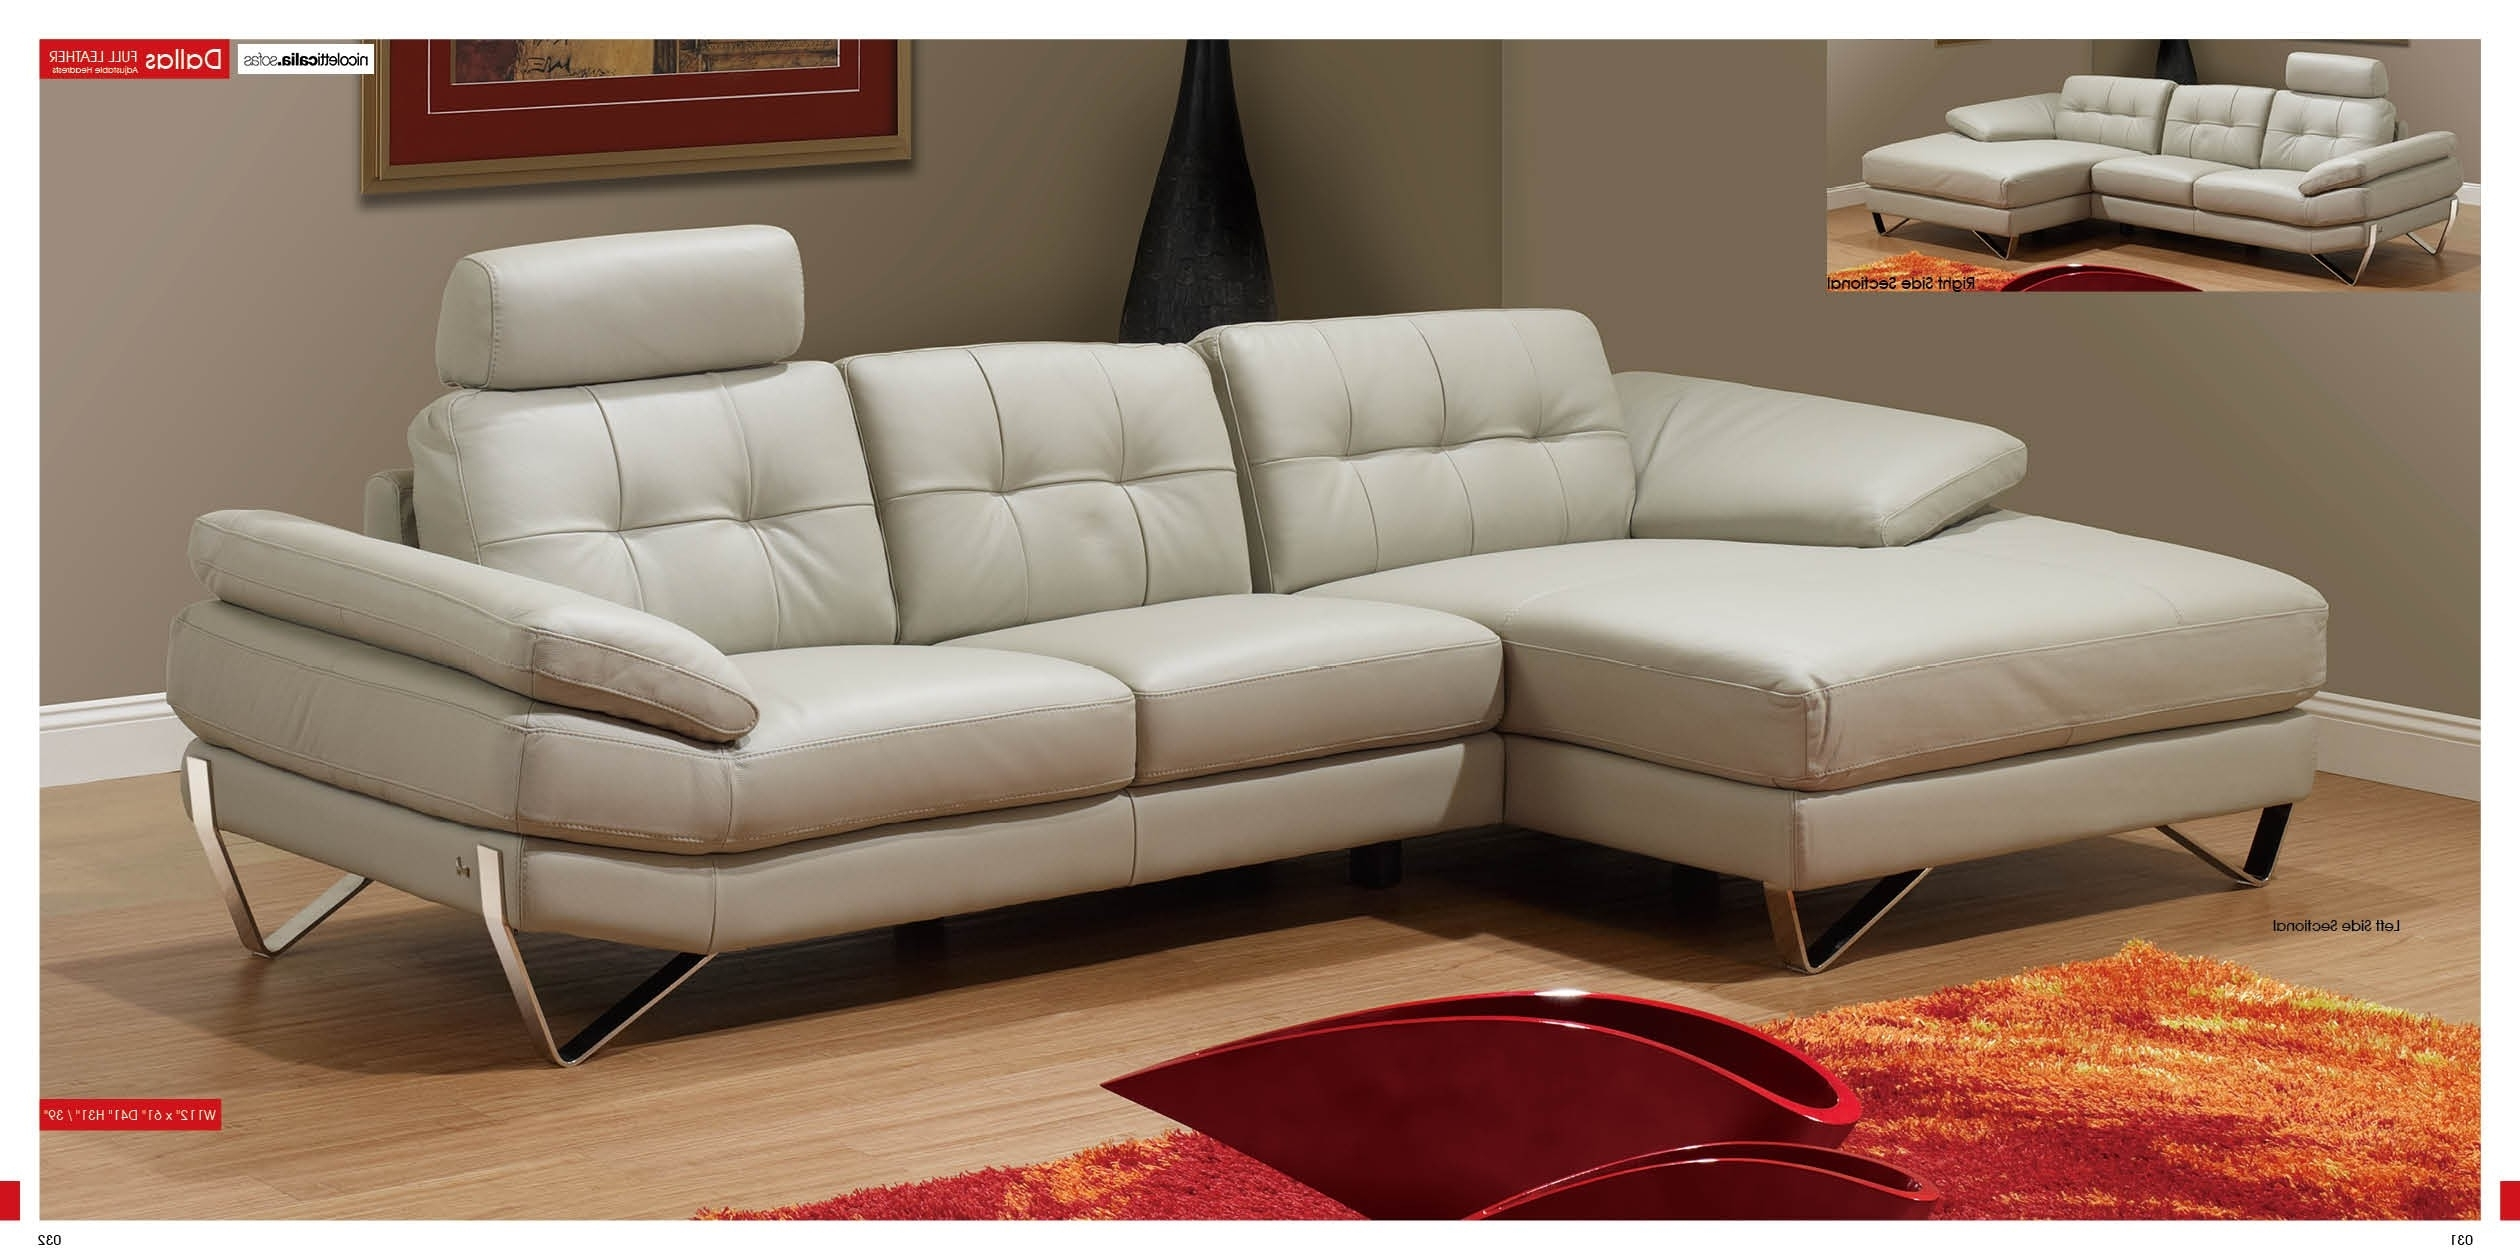 Furniture & Sofa: Glamorous Interior Furniture Designhavertys Pertaining To Popular Macon Ga Sectional Sofas (View 6 of 20)